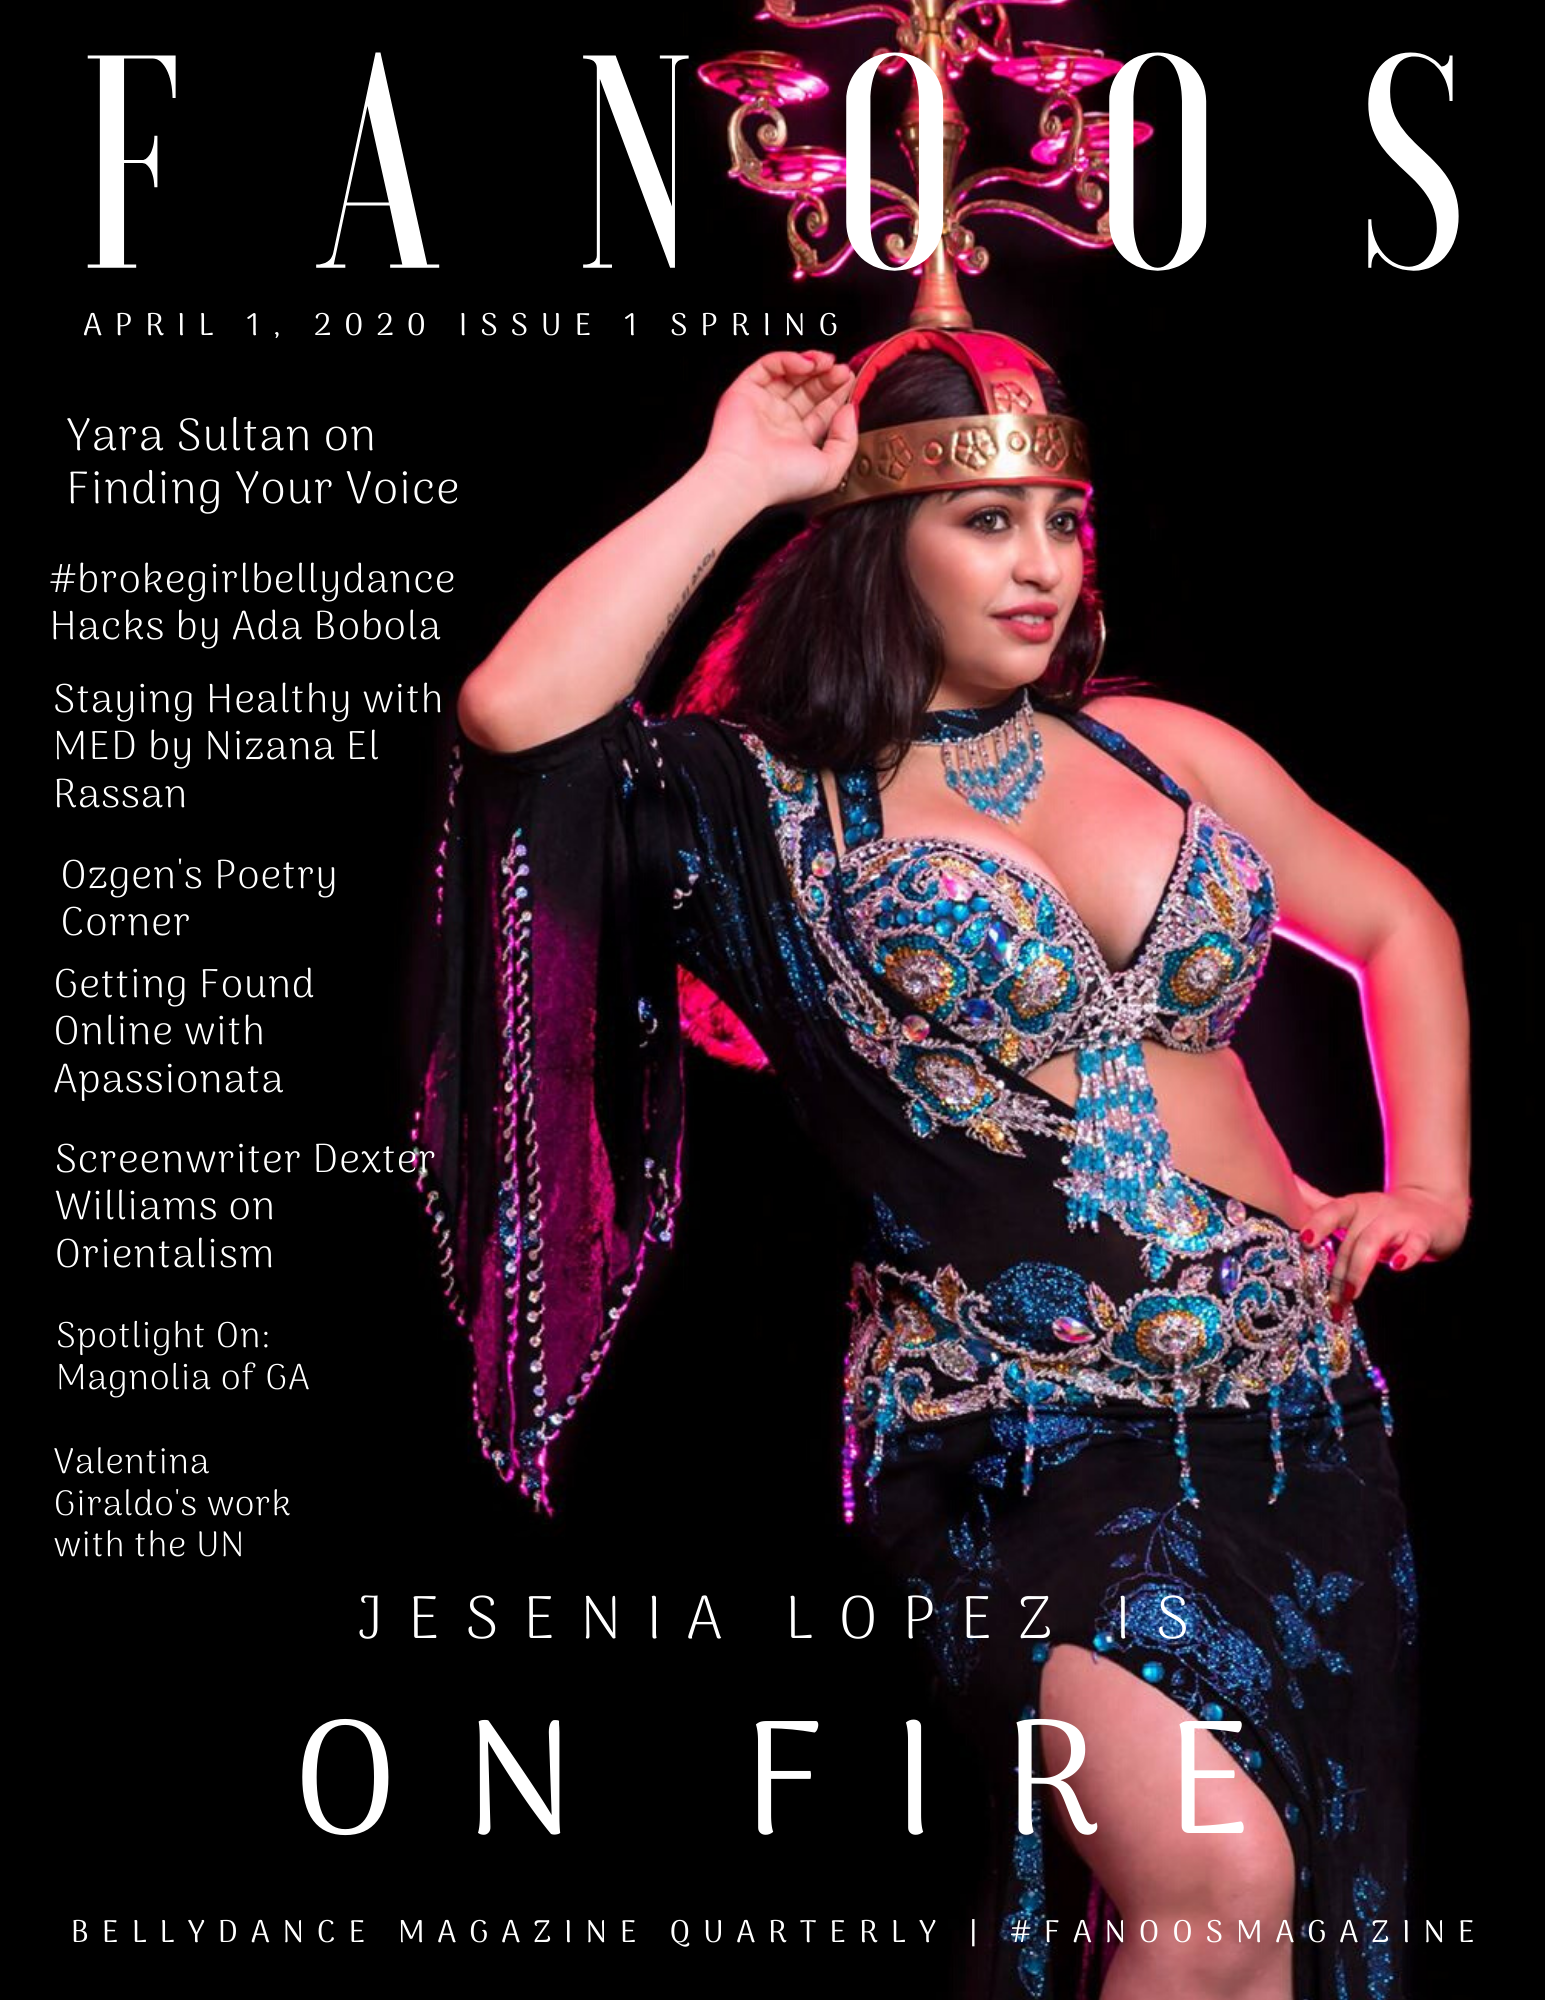 FANOOS Bellydance Magazine April 2020